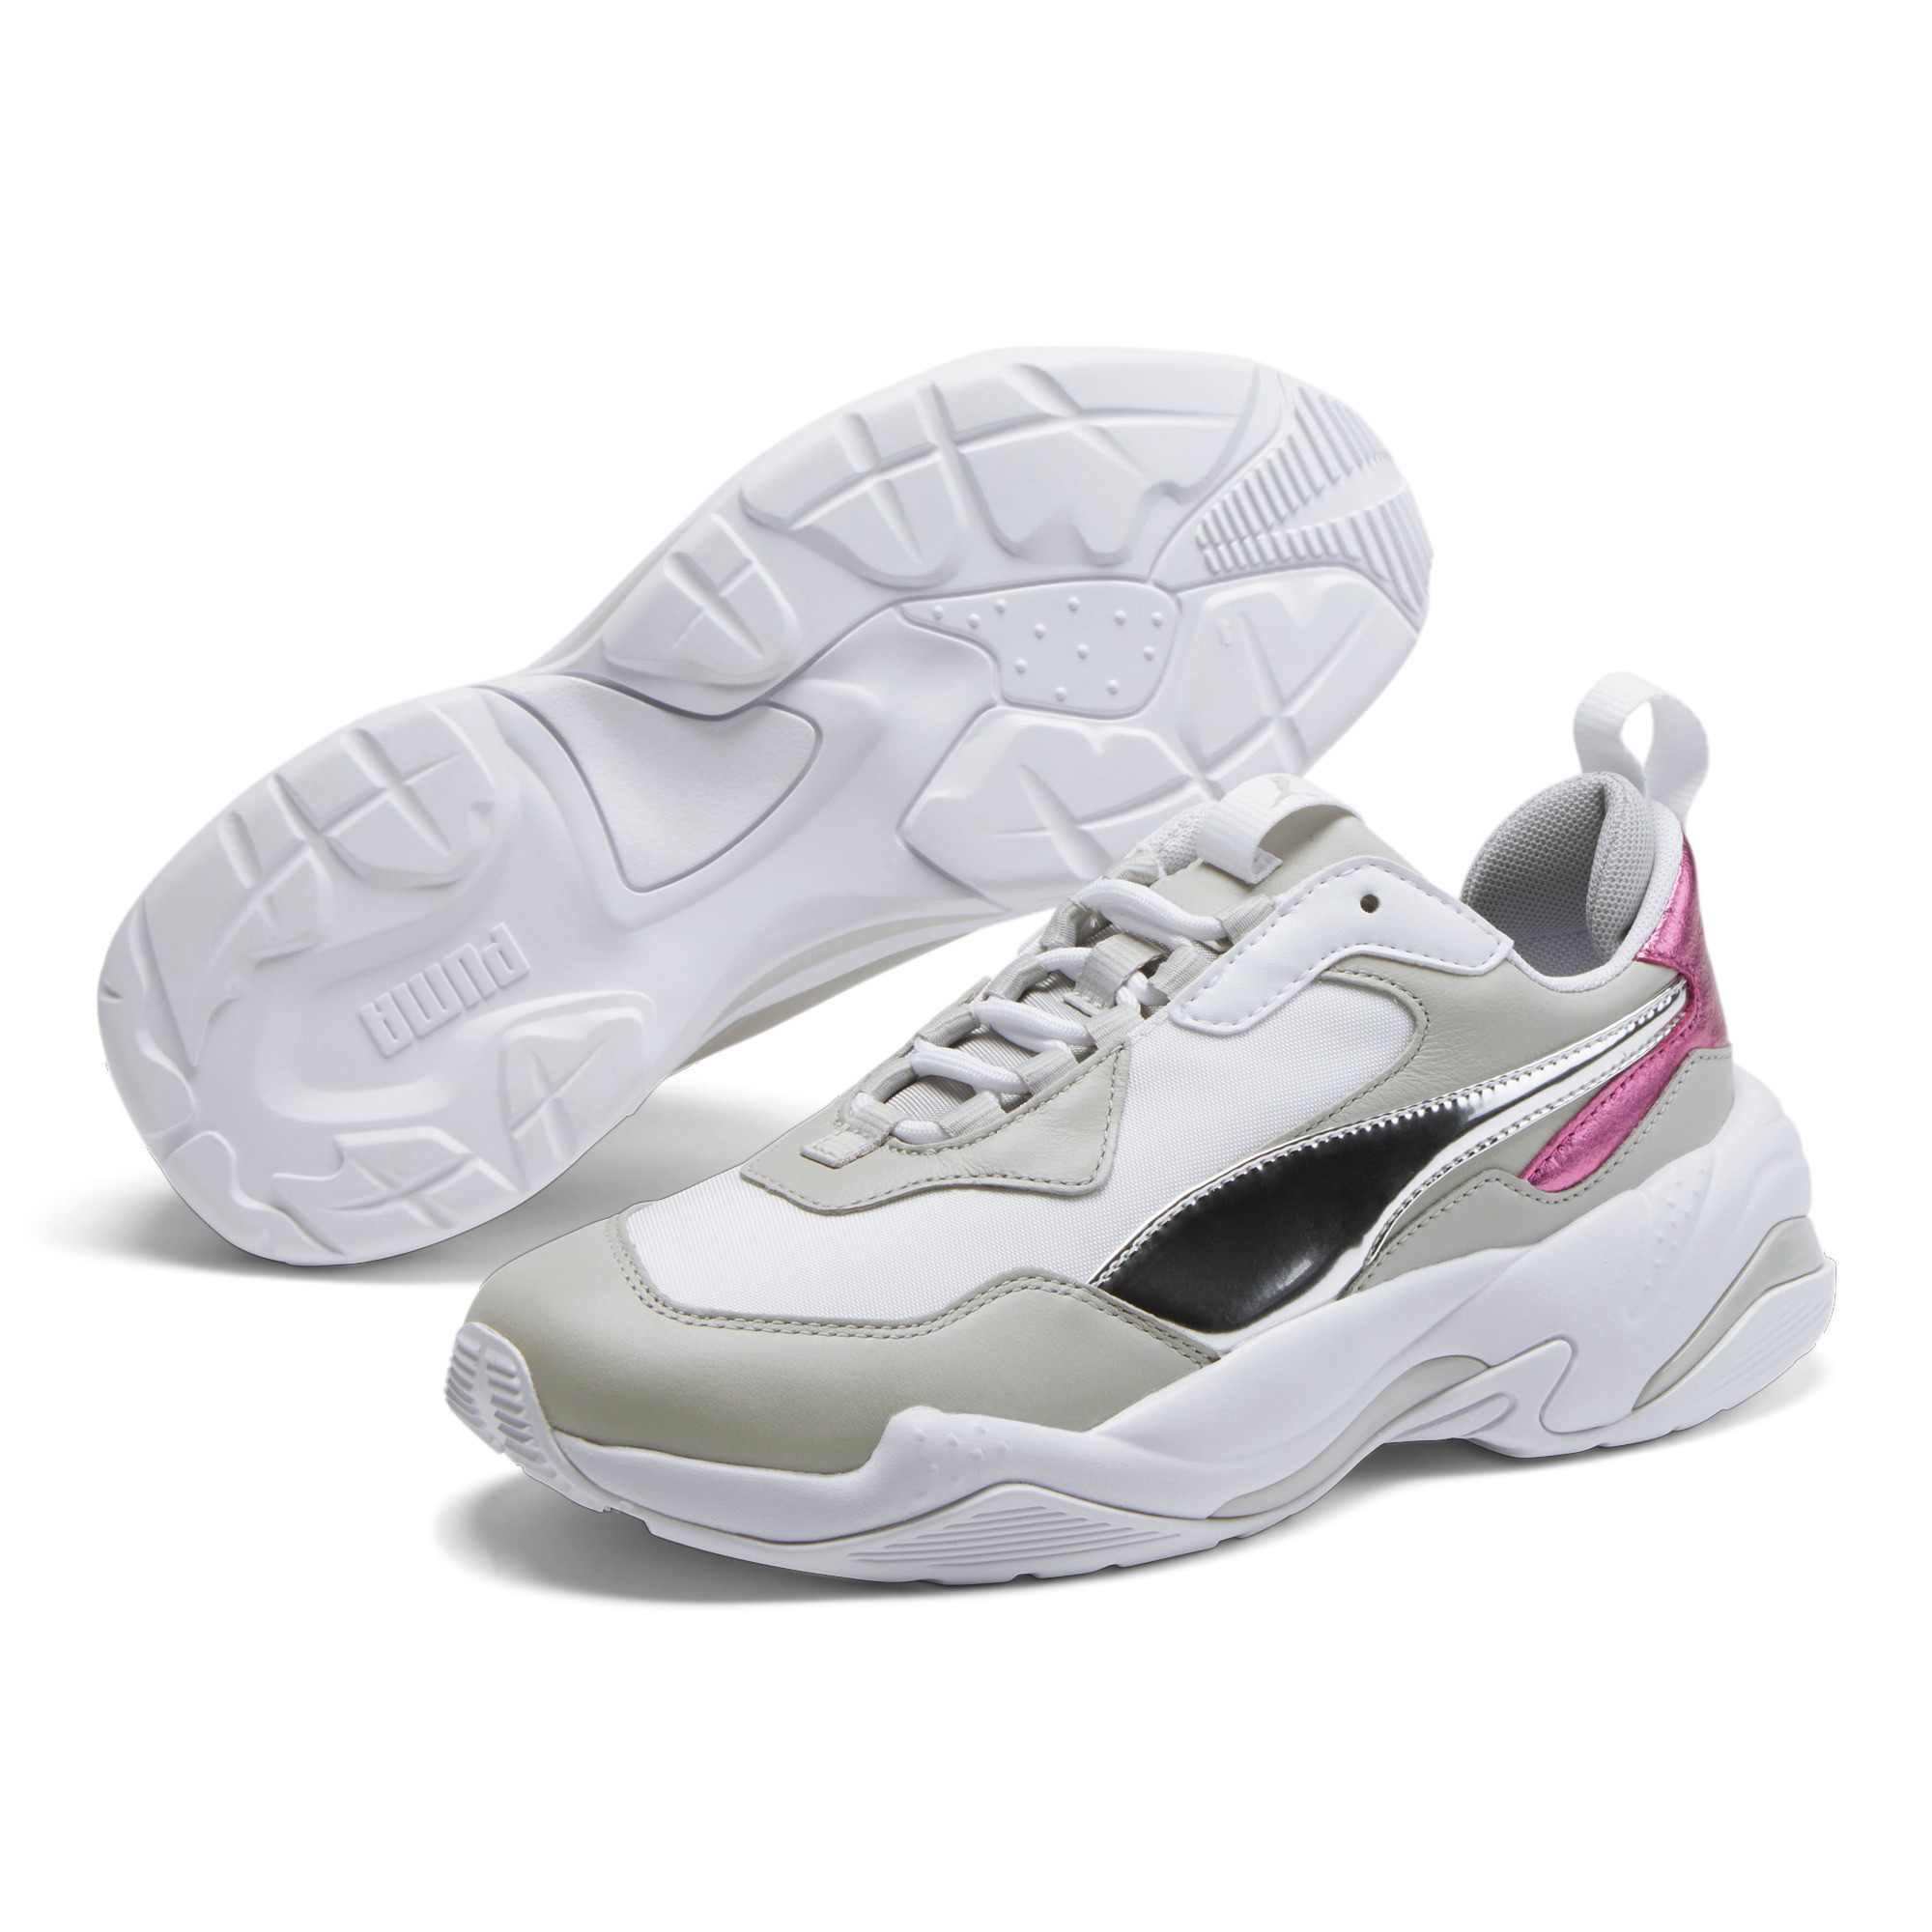 Details about PUMA Women's Thunder Electric Sneakers